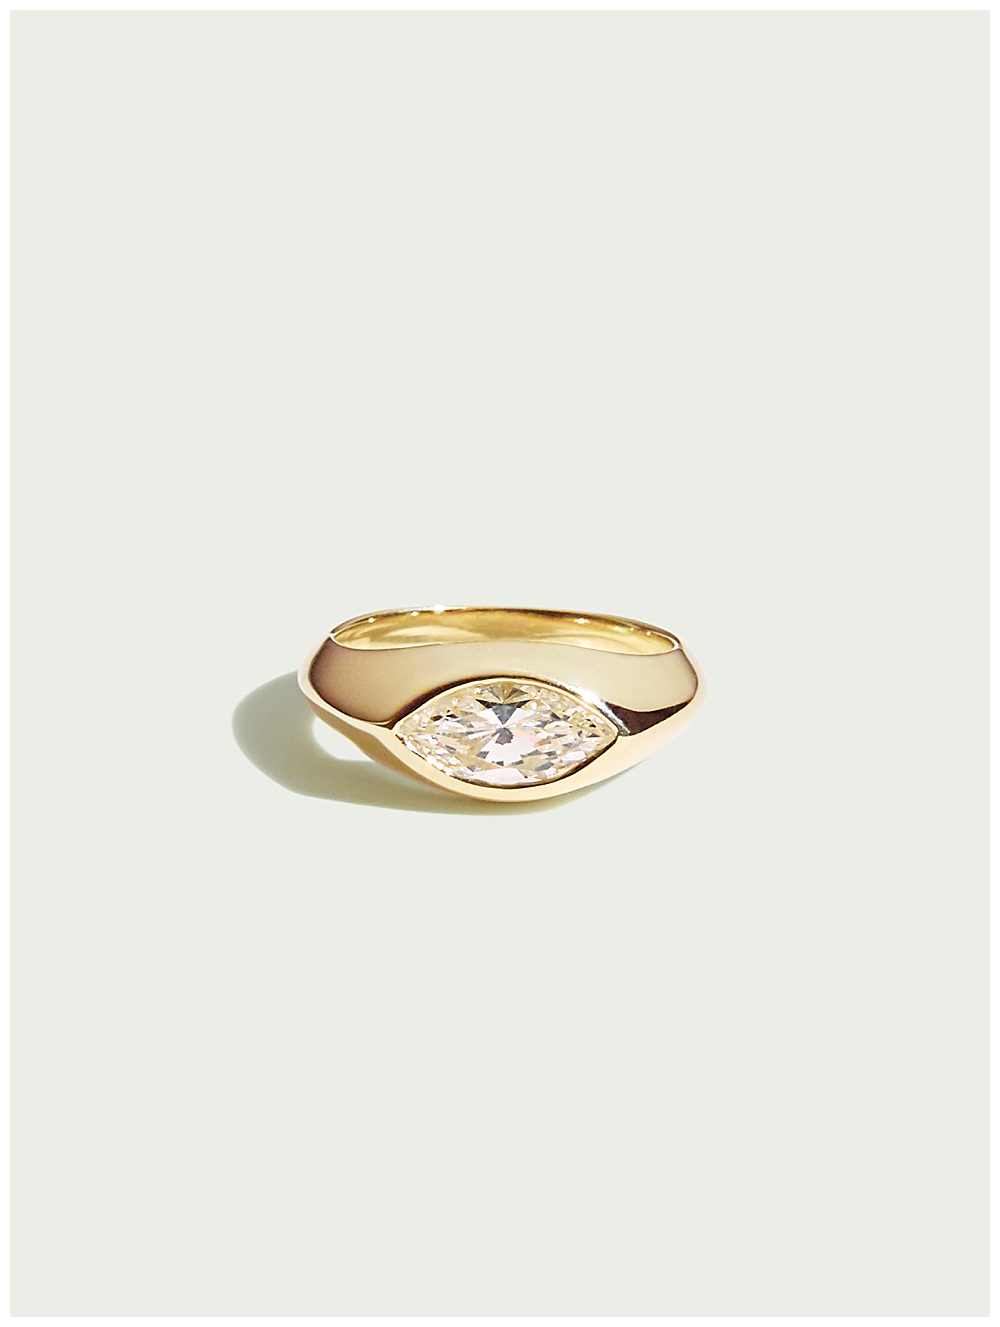 unisex-engagement-rings-11